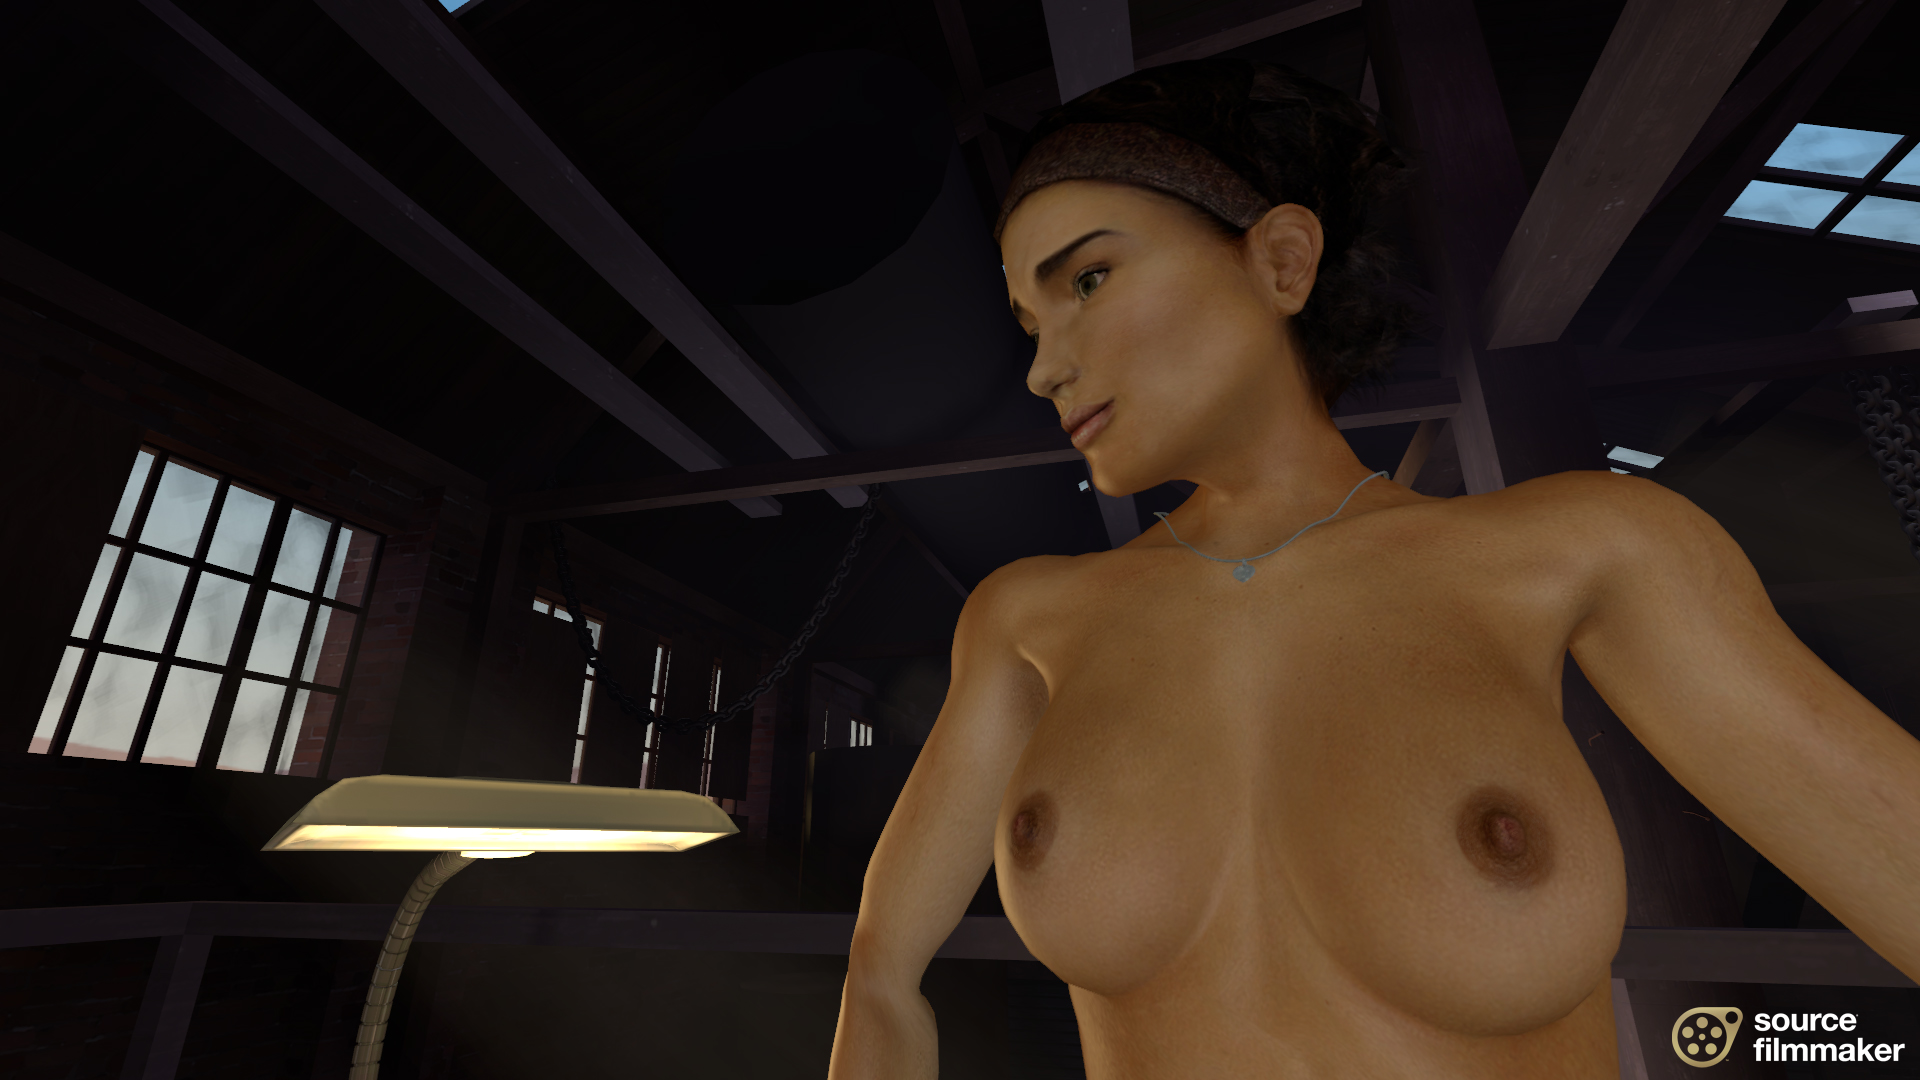 Mass effect nude patch nudeskins net sexy thumbs